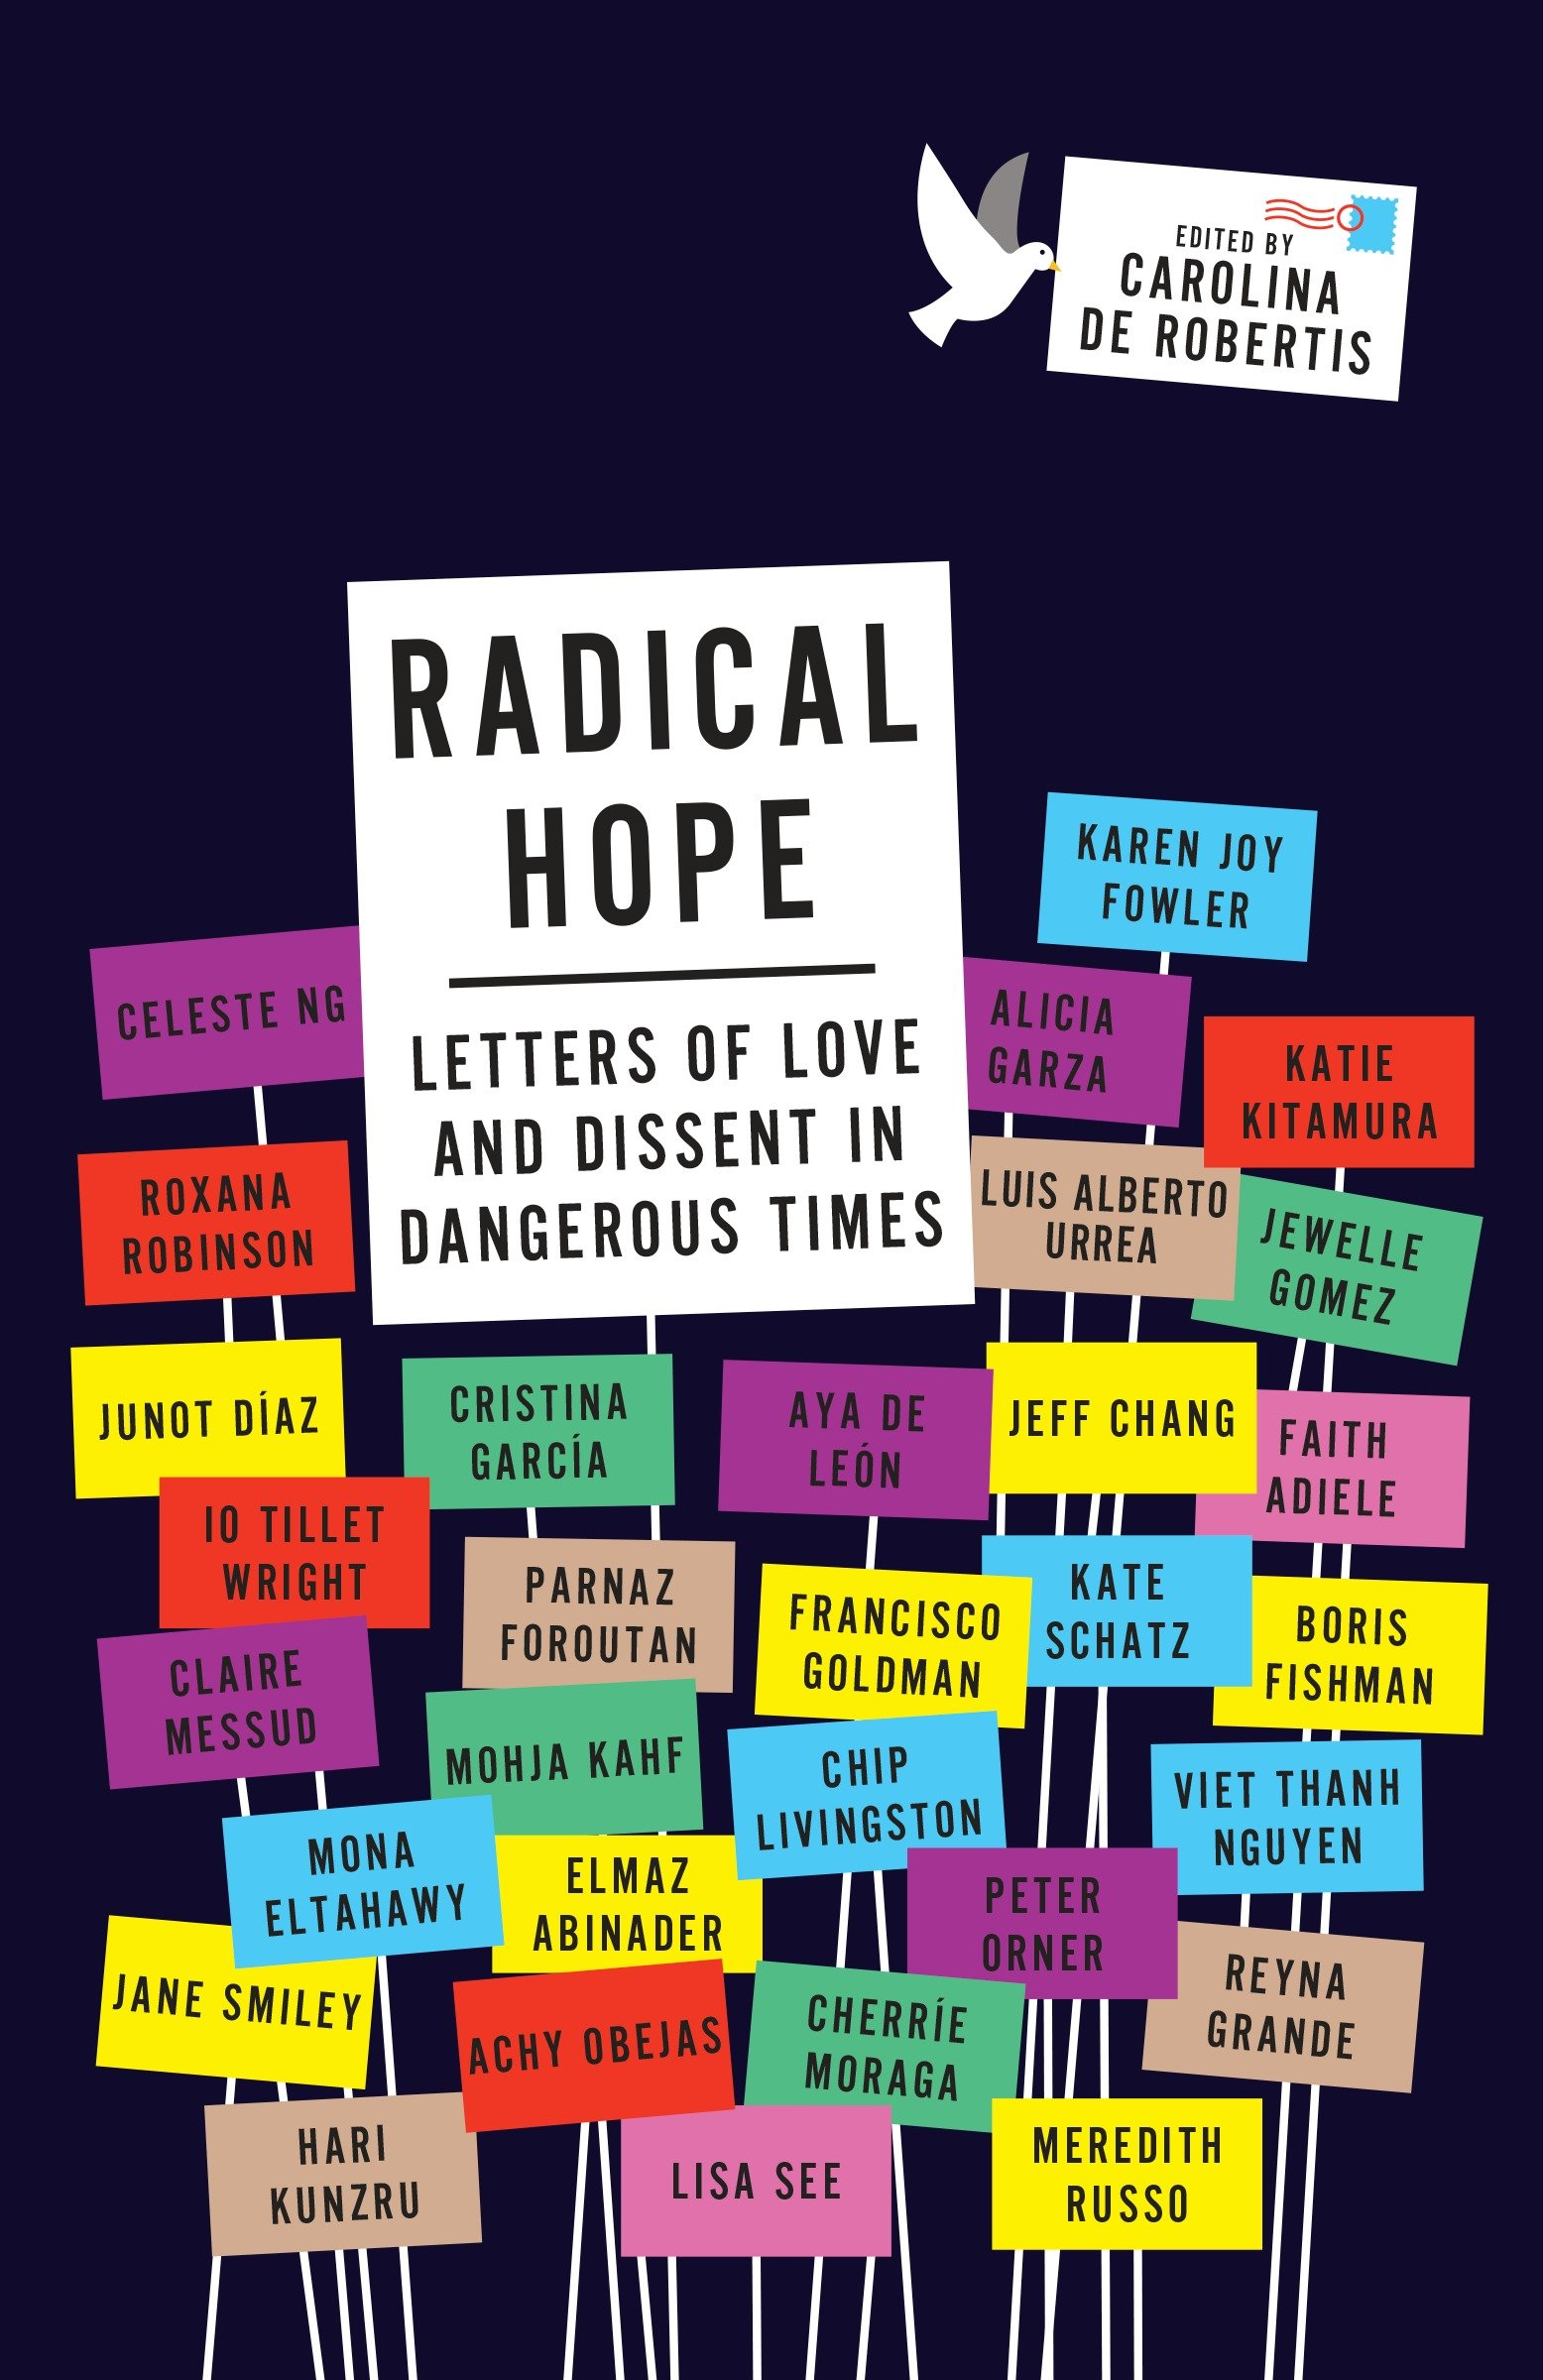 Radical Hope Letters of Love and Dissent in Dangerous Times